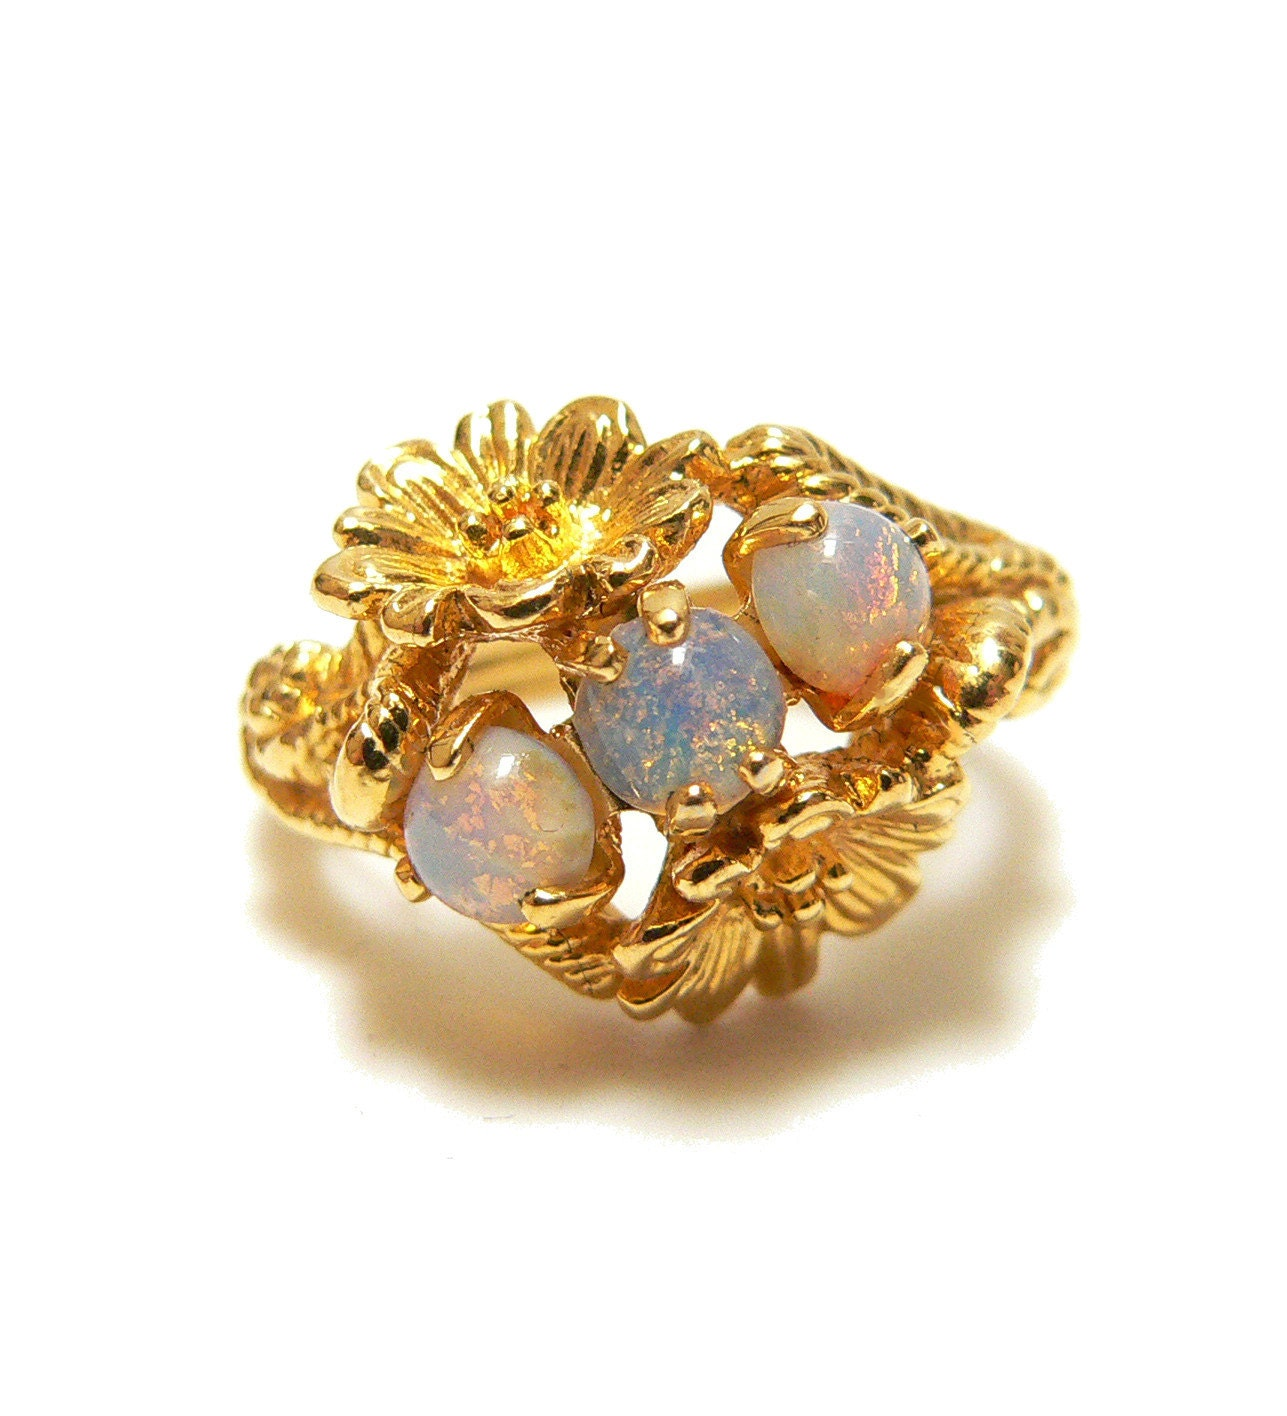 Vintage Opal Ring Avon Ring 1970s Jewelry Cocktail Ring